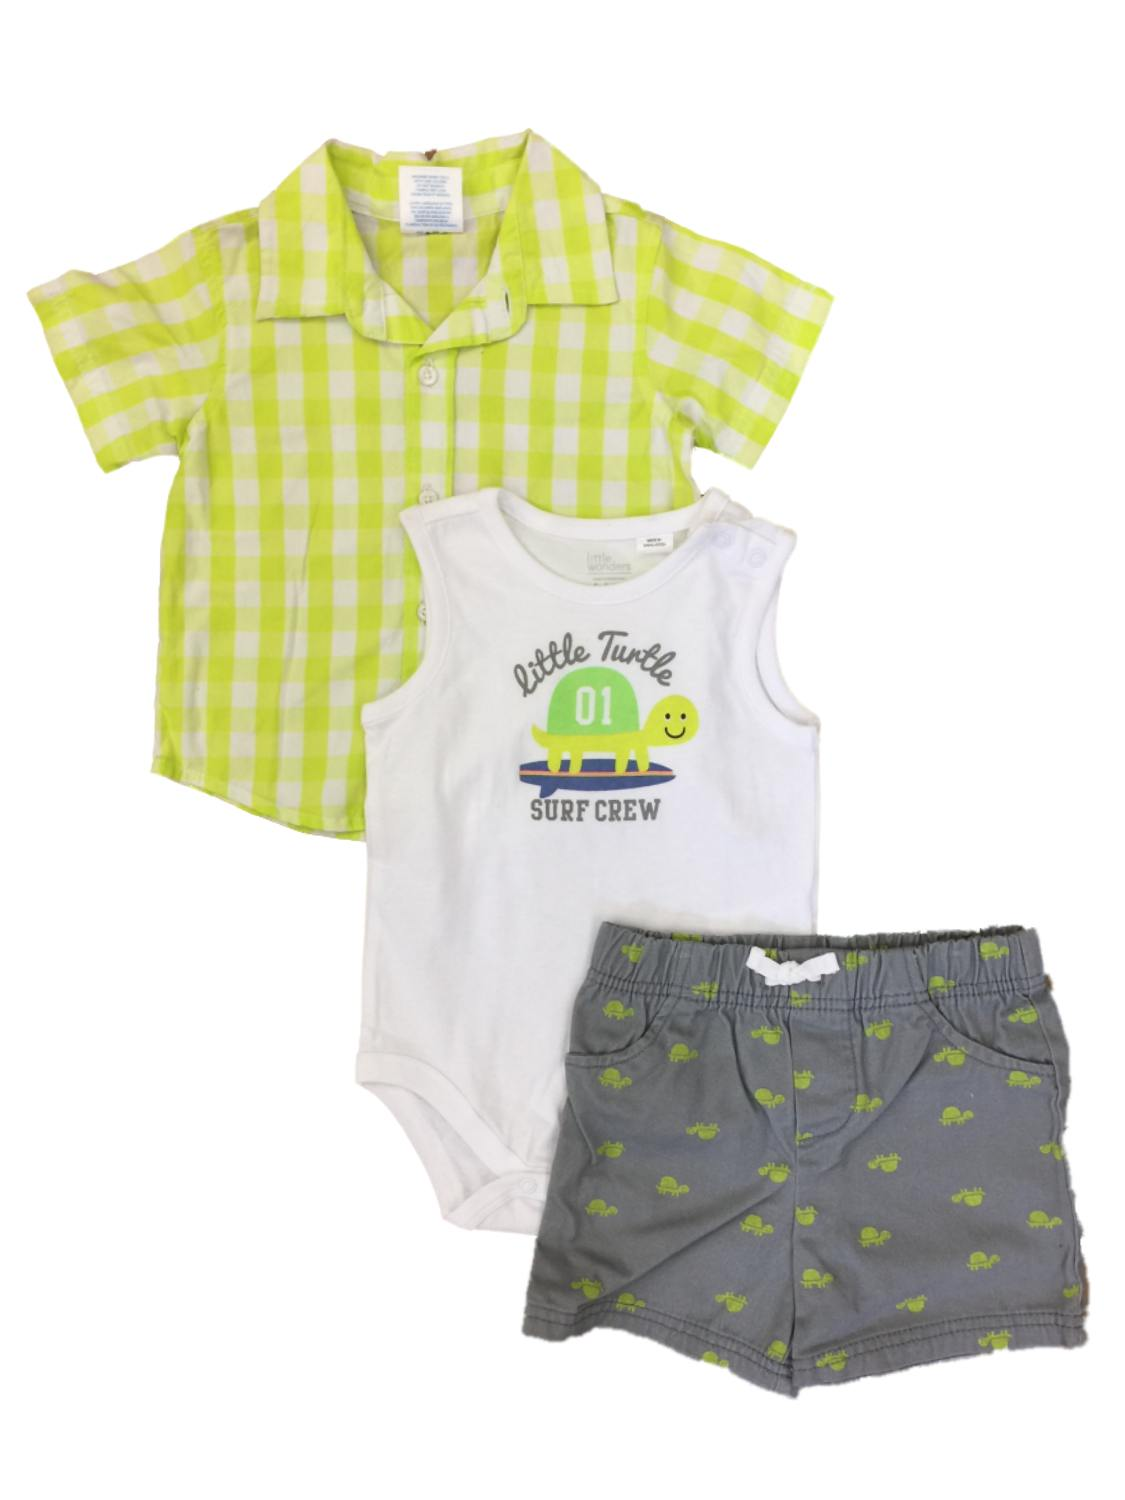 Infant Boys 3PC Baby Outfit Surfs Up Bodysuit Blue Plaid Shirt /& Shorts